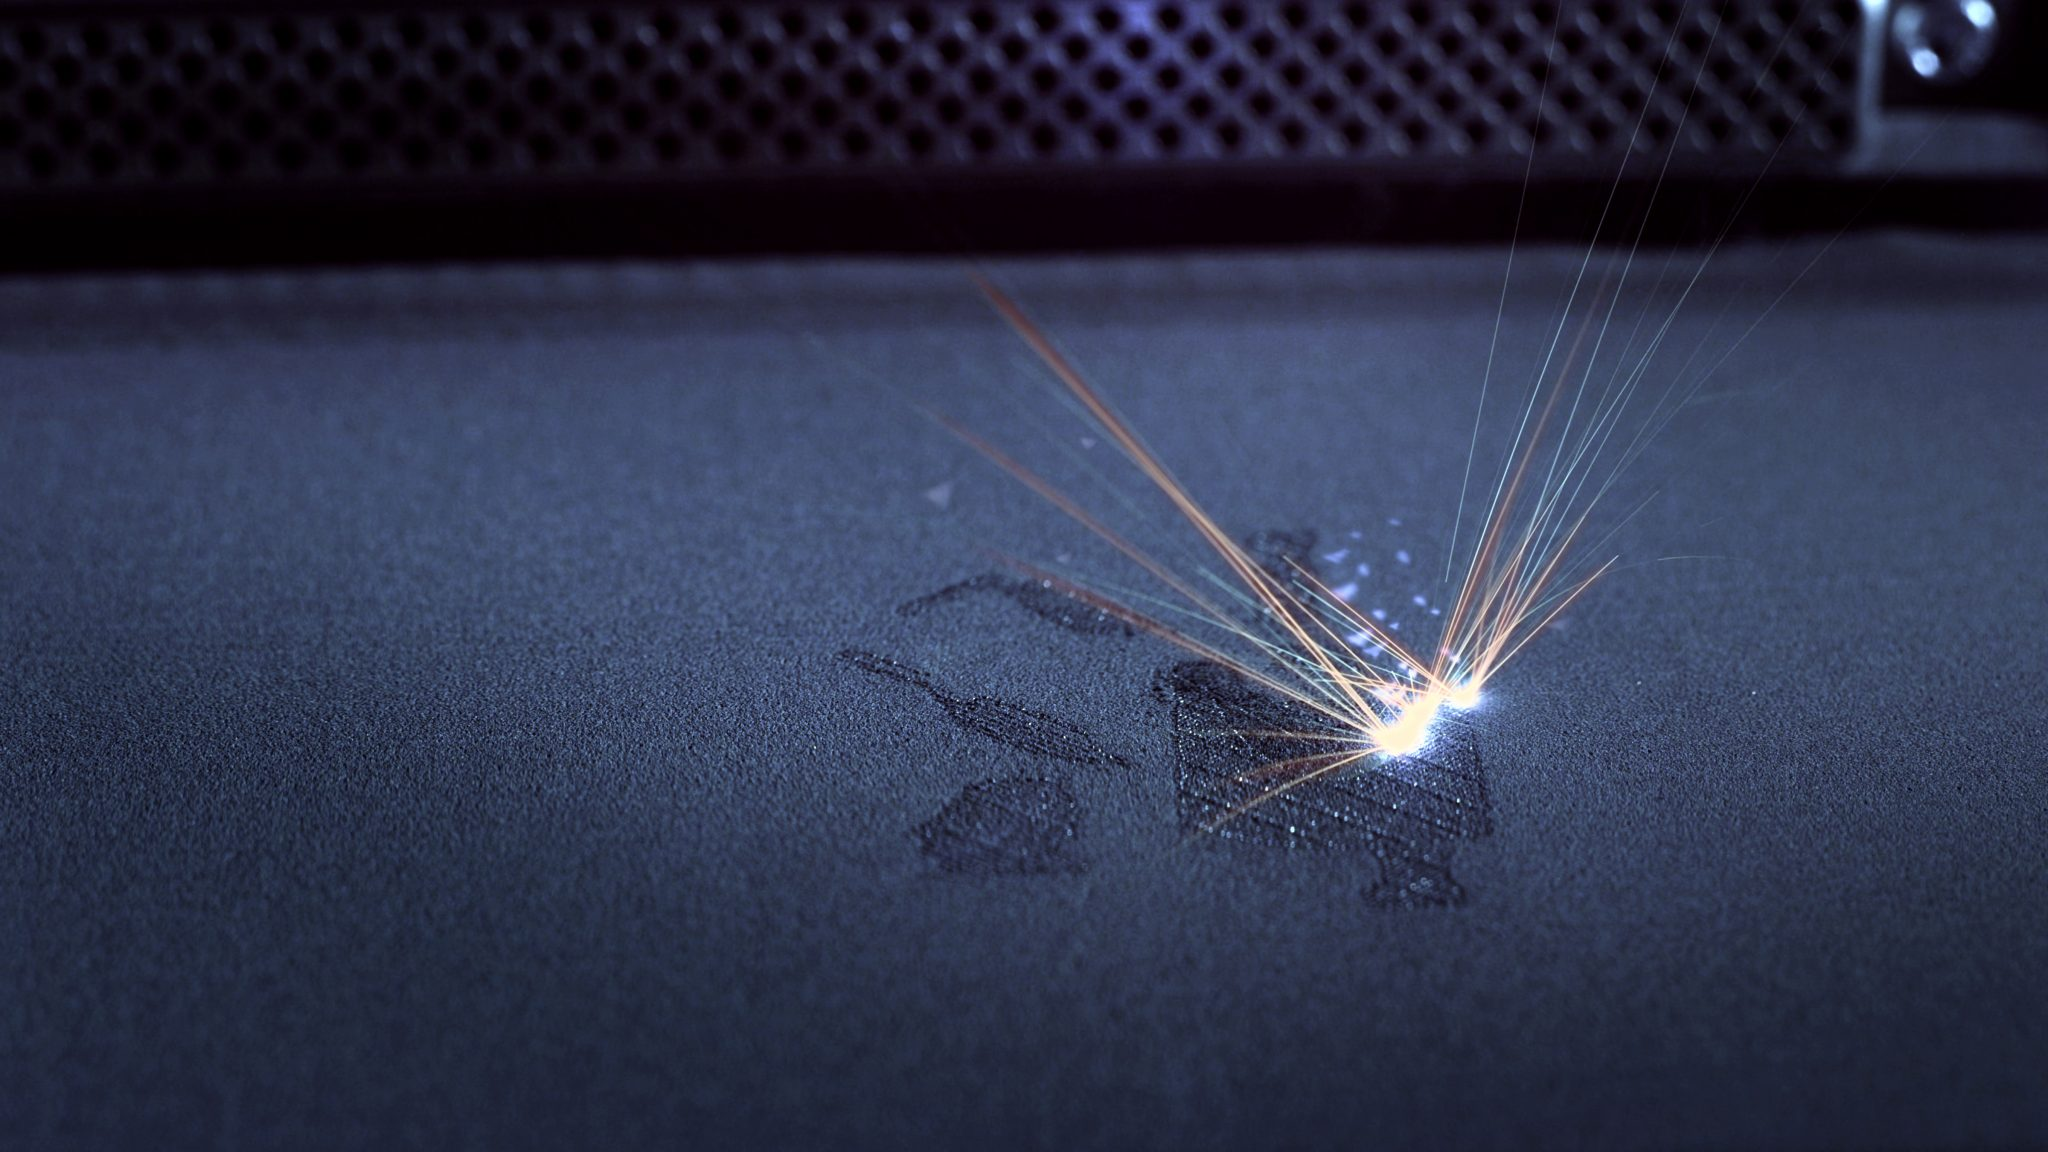 Laser powder bed fusion (LPBF) 3D printing certification in an EOS machine. Photo via EOS